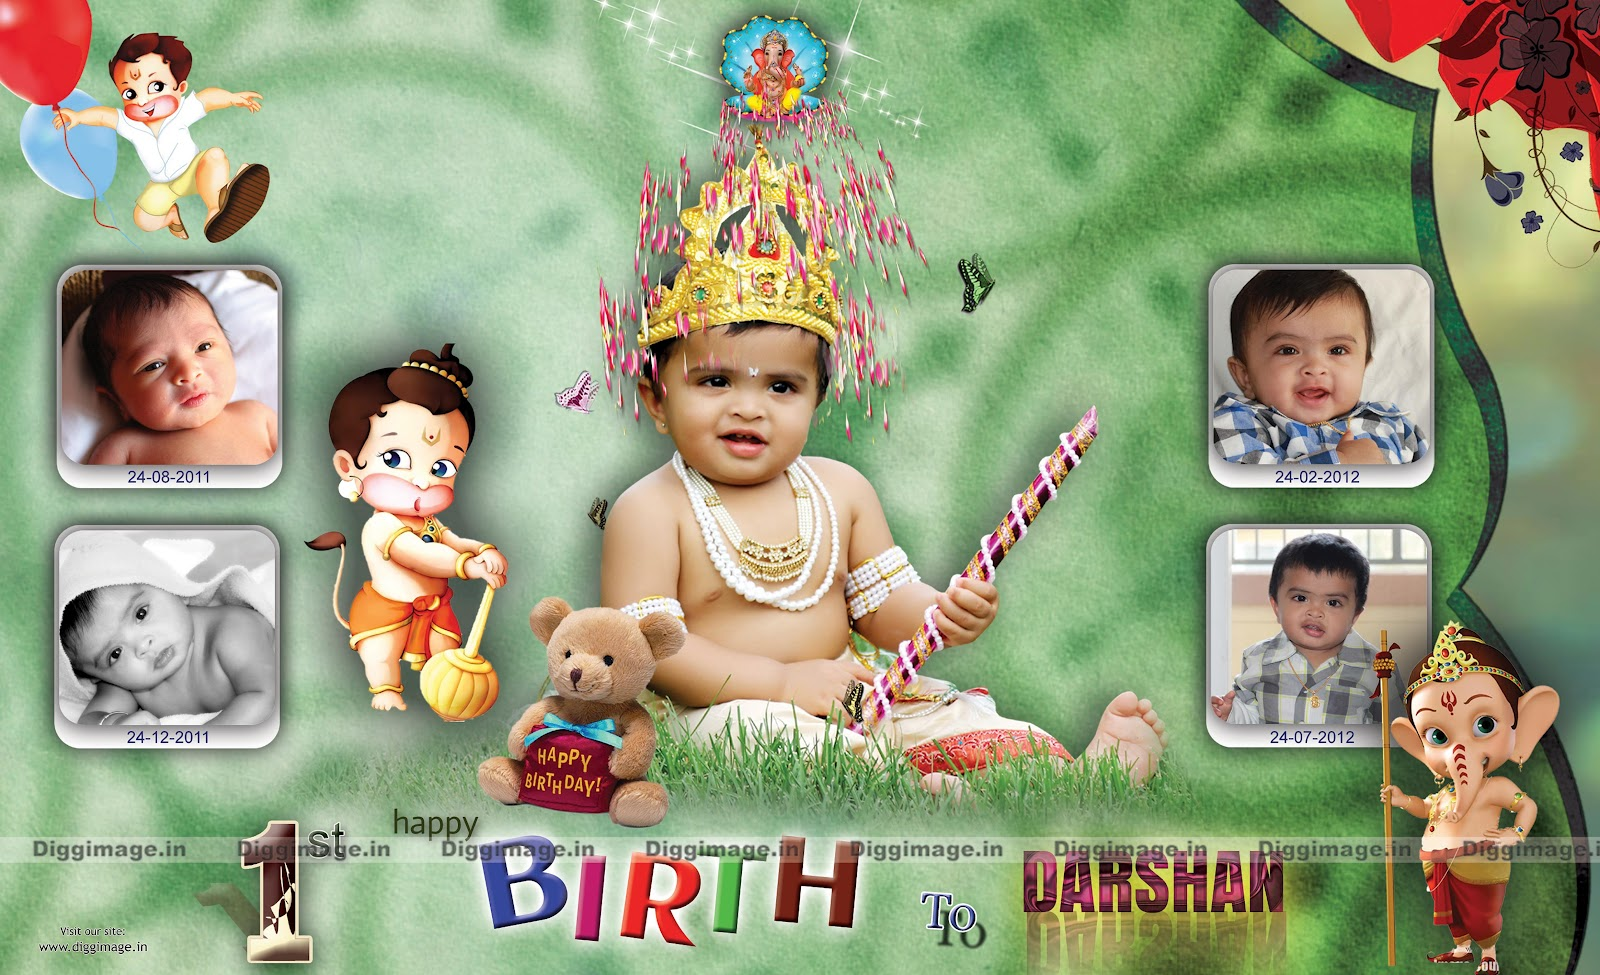 1st happy birthday flex designs ; birthday+flex+to+NRi+%2528indain+%2529+desigen+by+diggimage